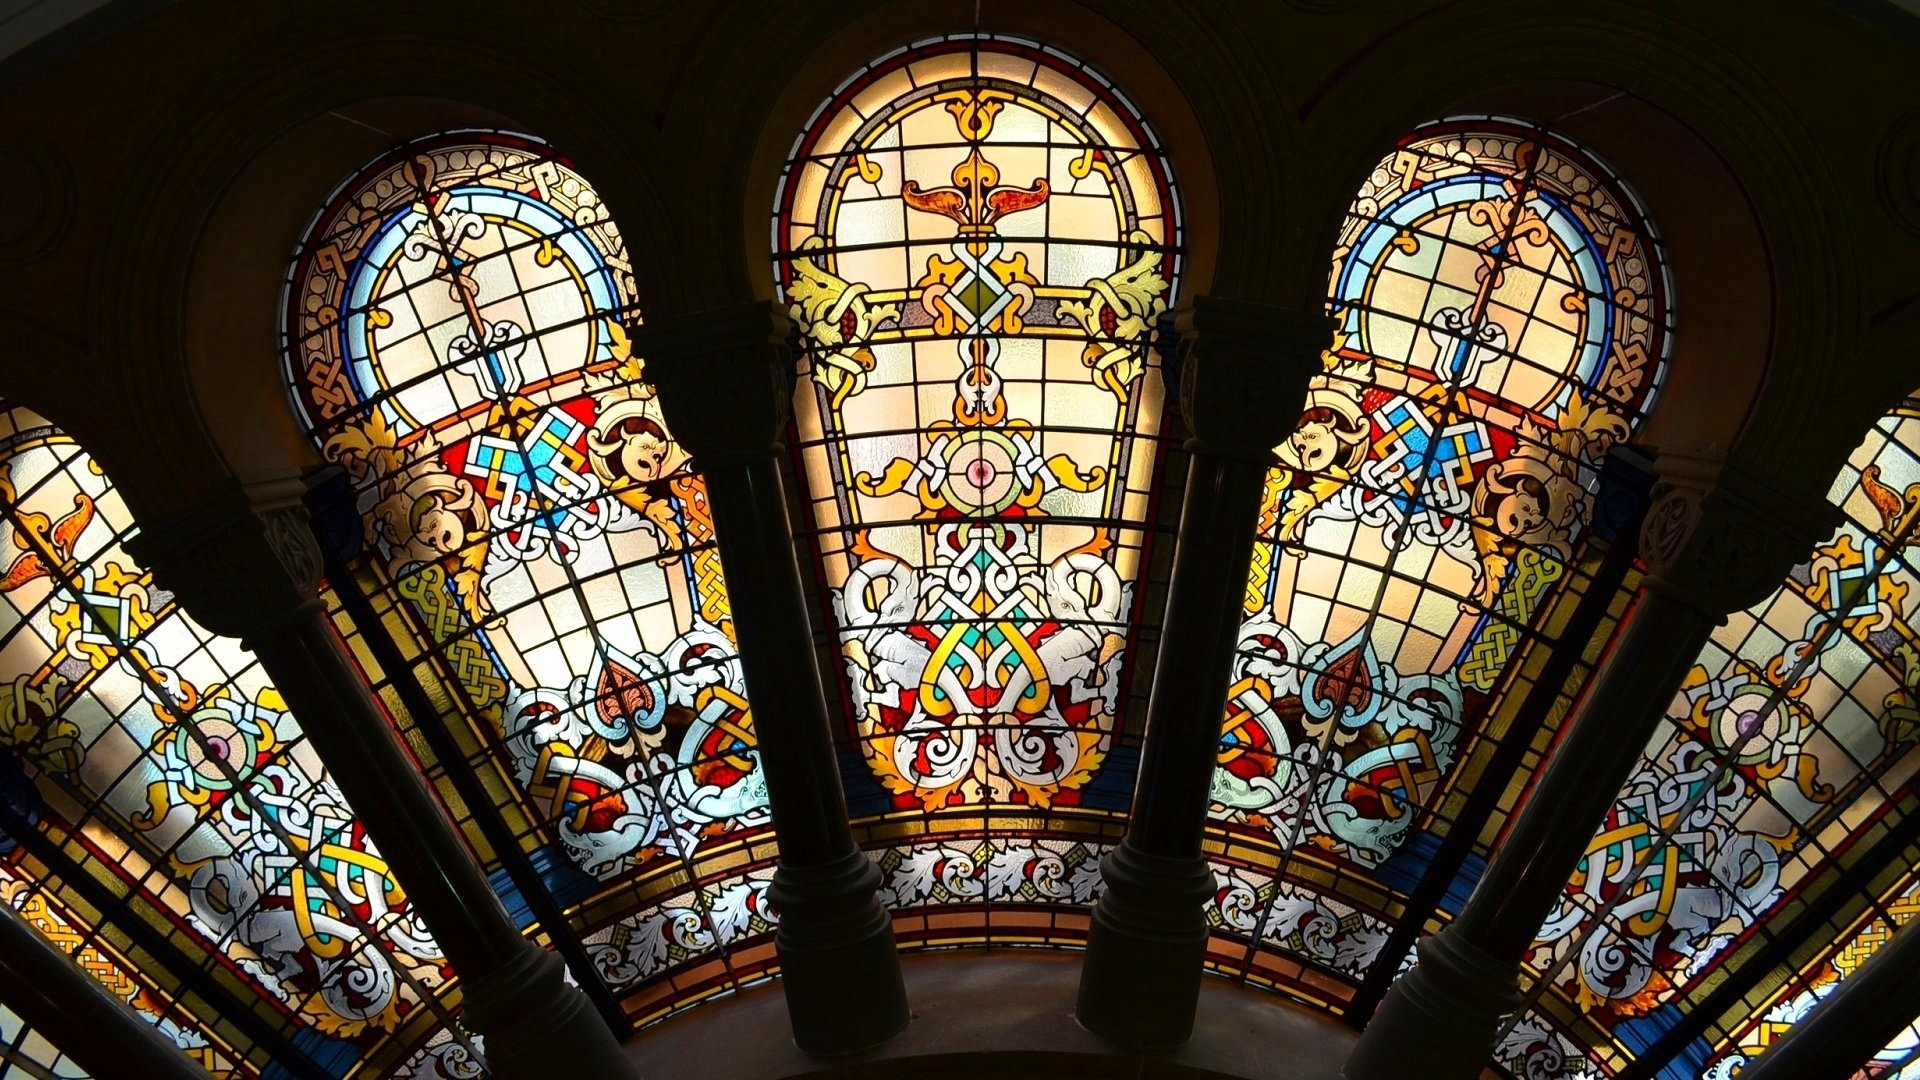 stained glass windows in the qvb sydney australia. full hd wallpaper